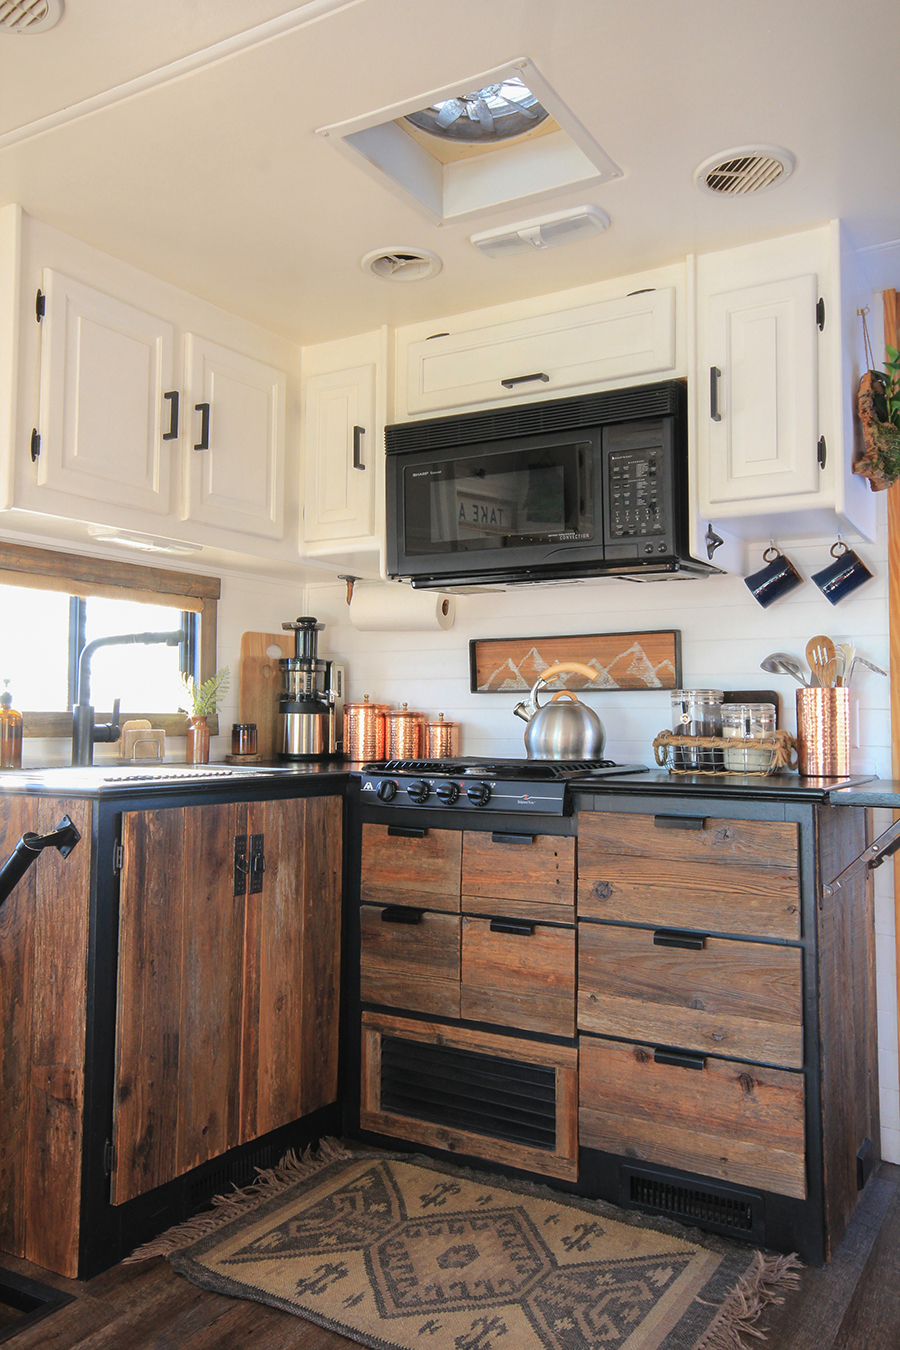 Reclaimed Wood Kitchen Cabinets in RV